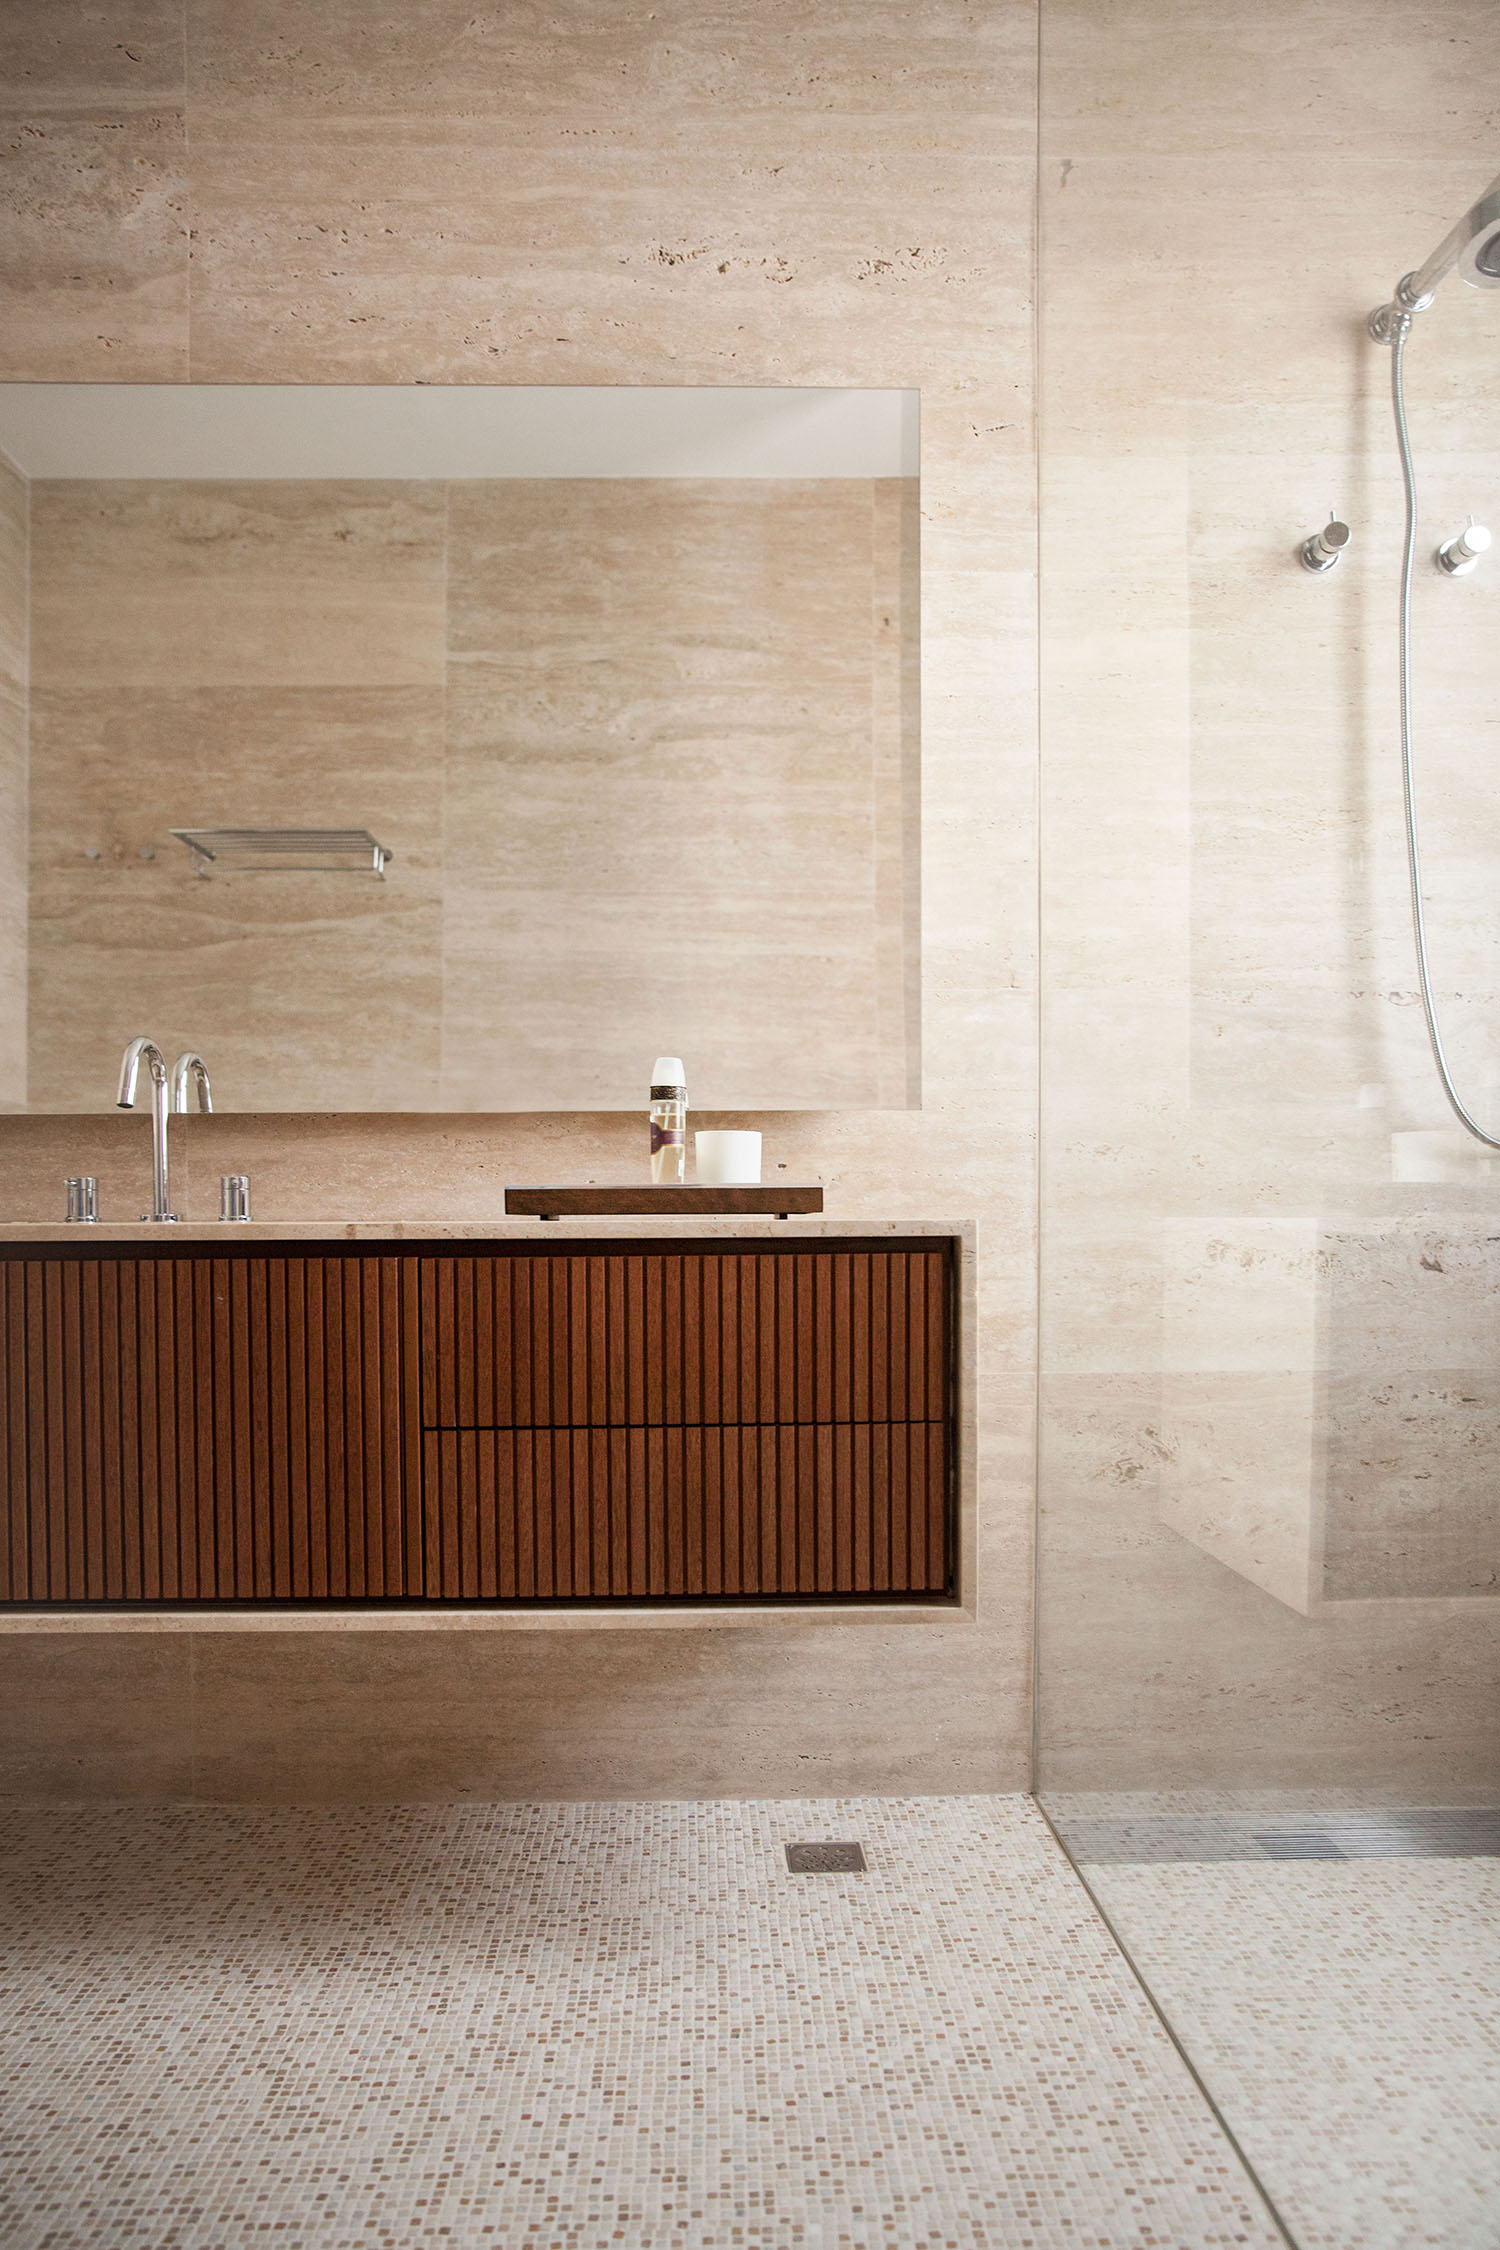 Bathroom - Washbasin design by studio mk27 }